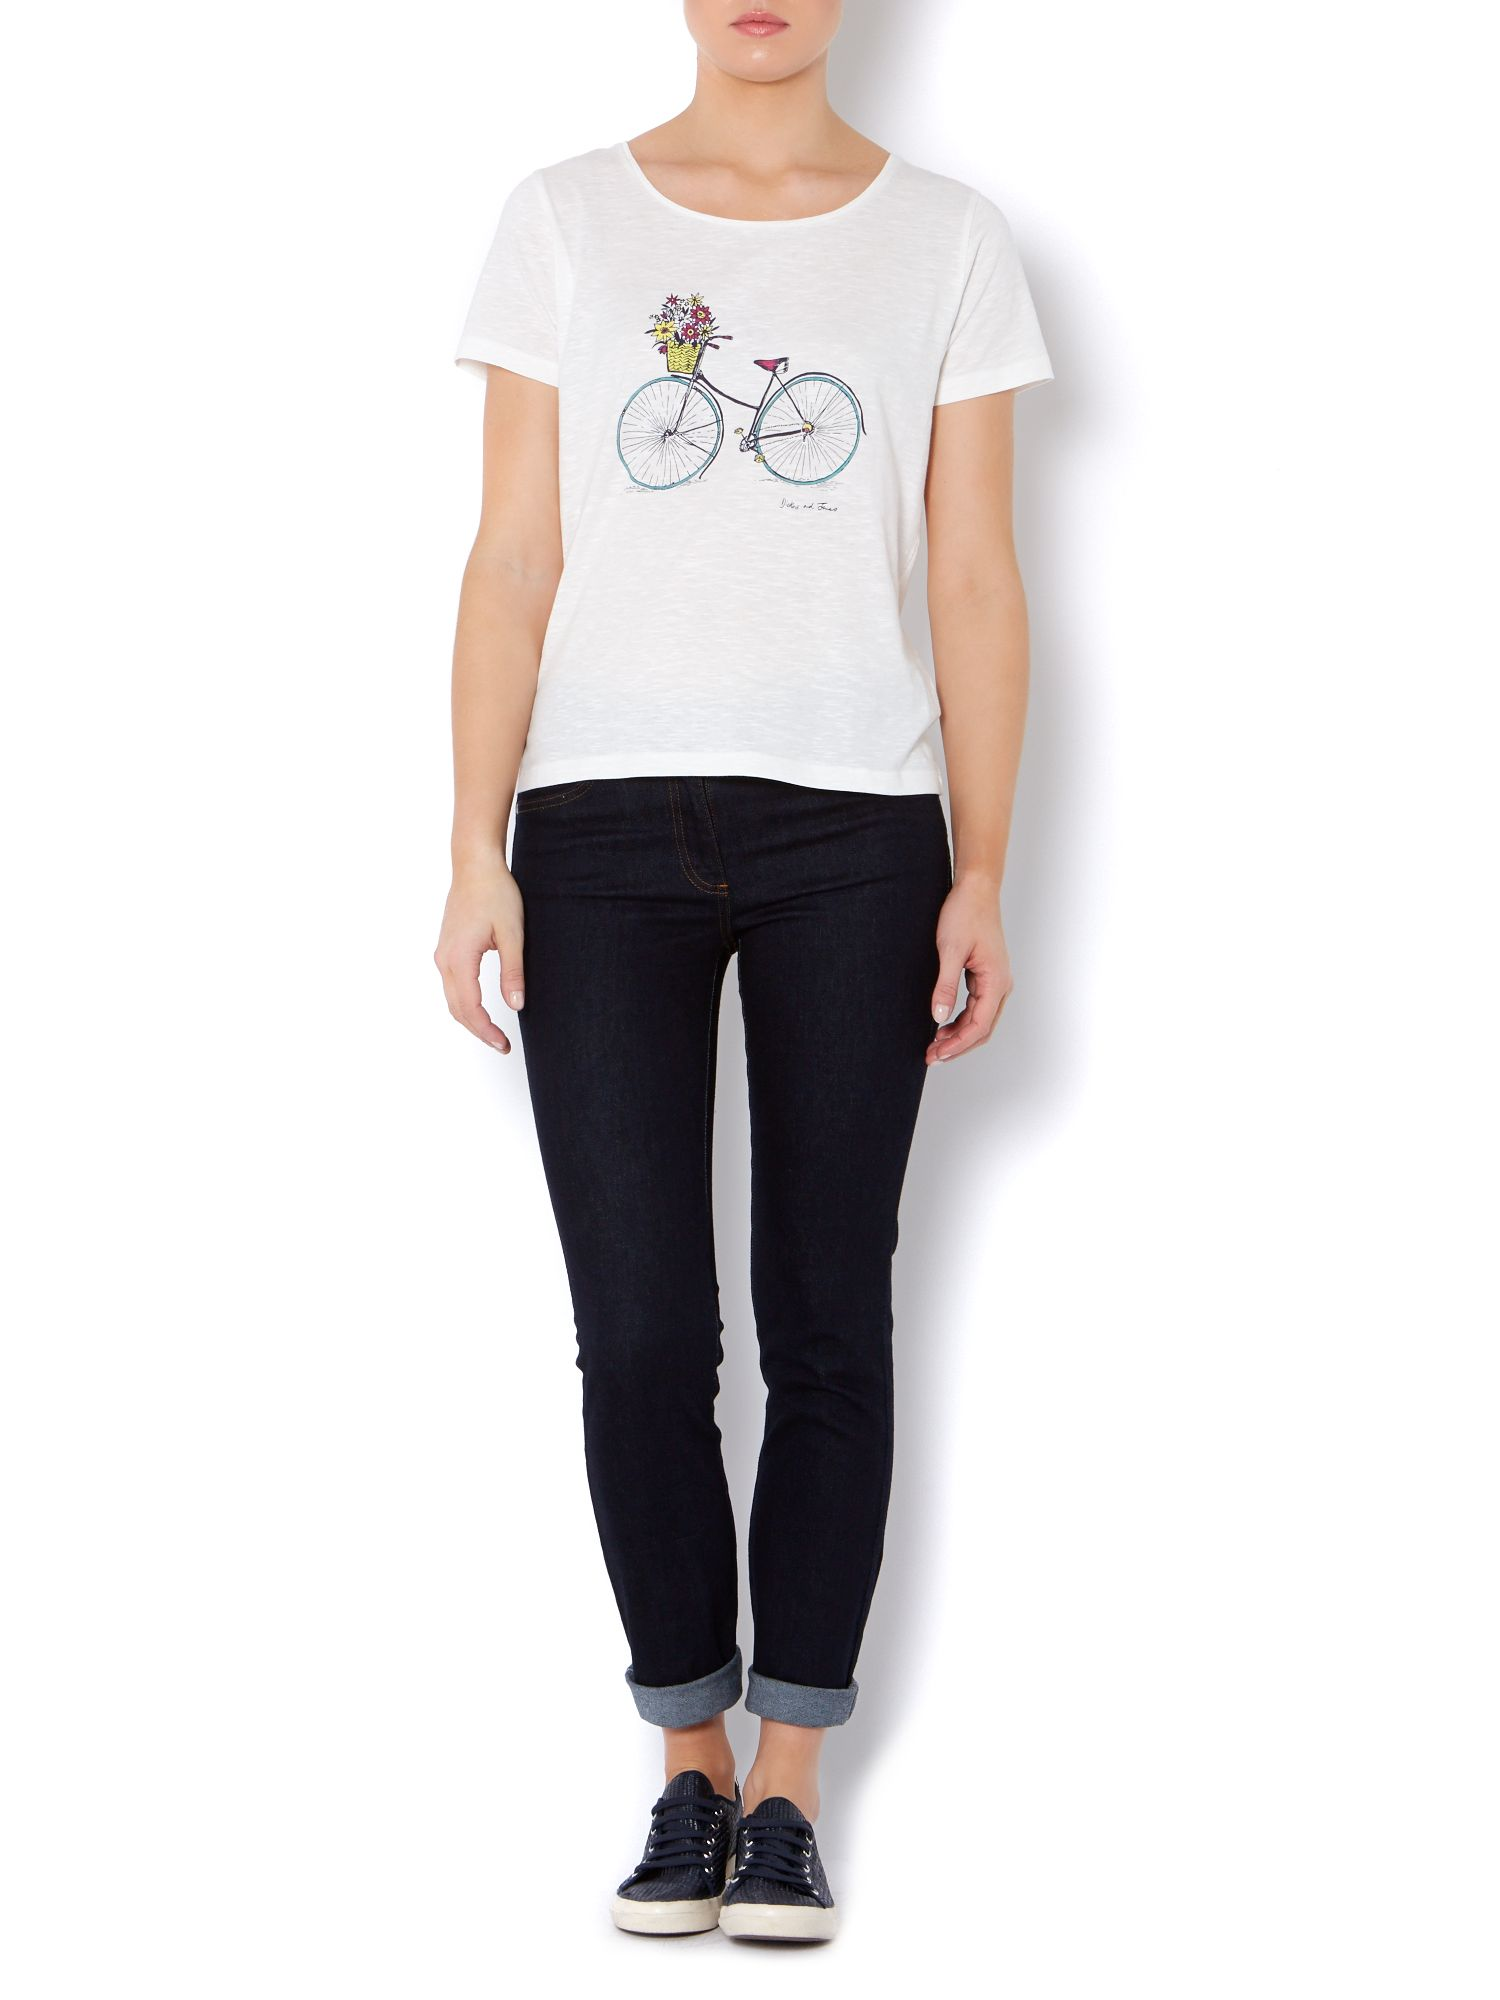 Bicycle placement tee